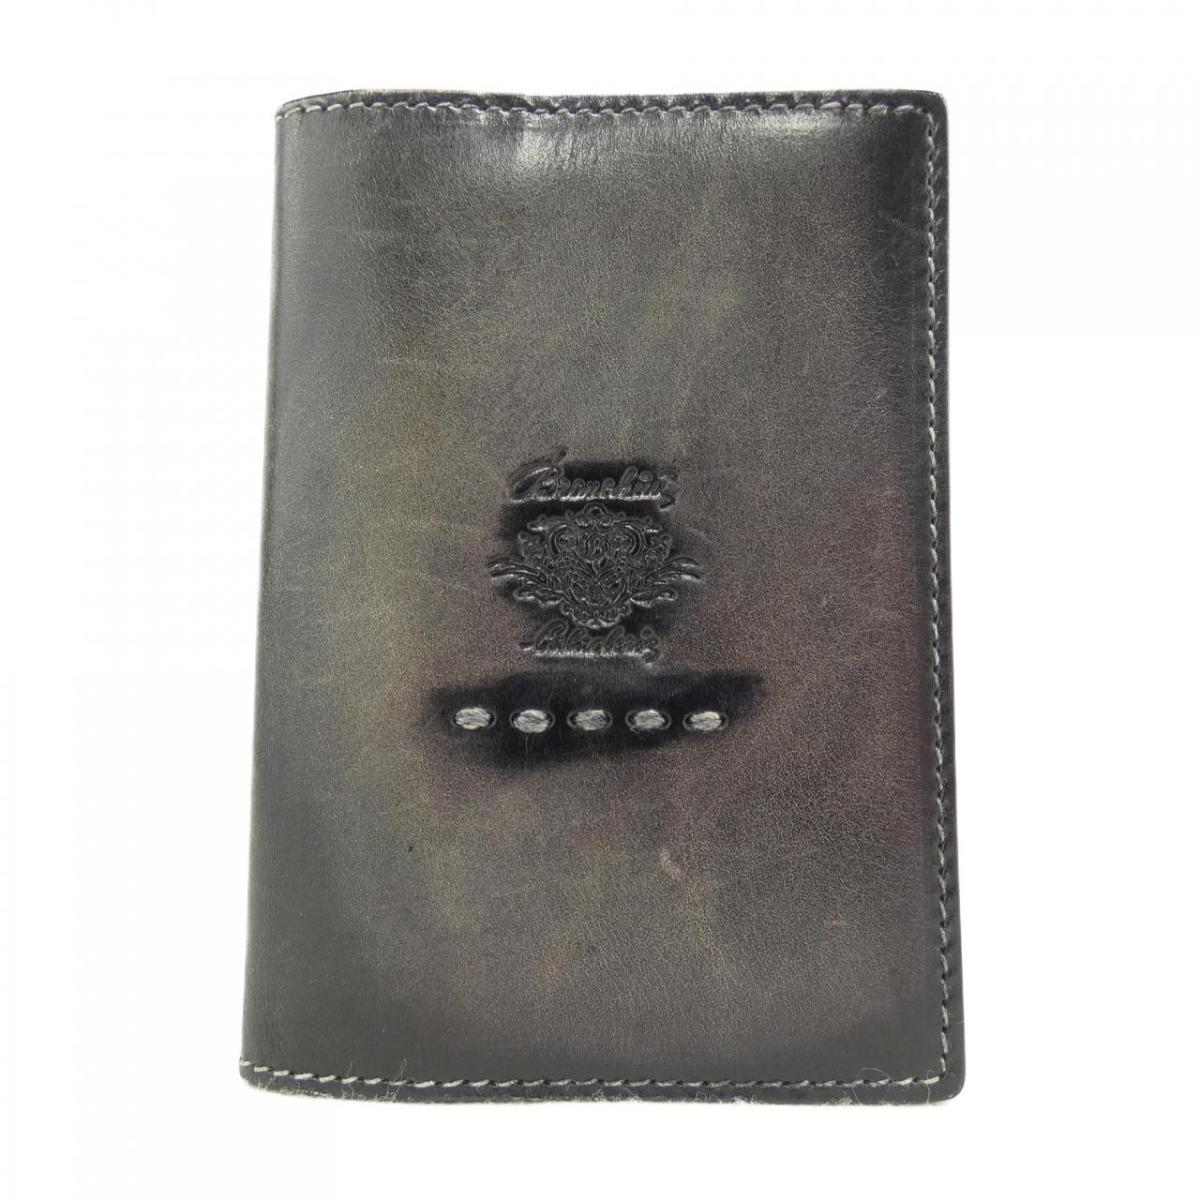 BRANCHINI CARD CASE【中古】